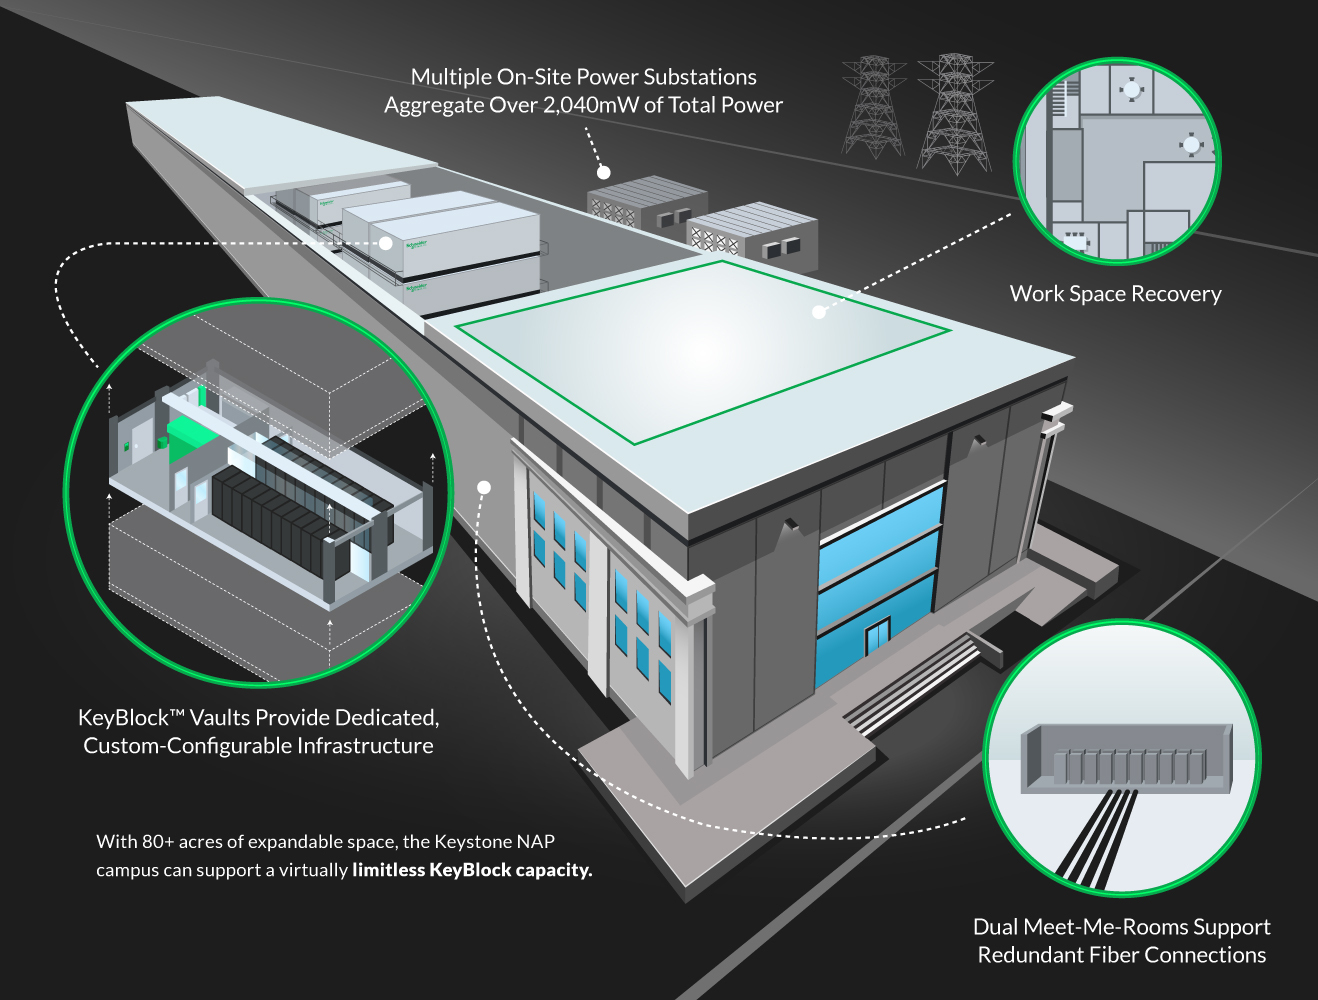 Keystone NAP to Launch First Advanced Data Center in the Northeast ...